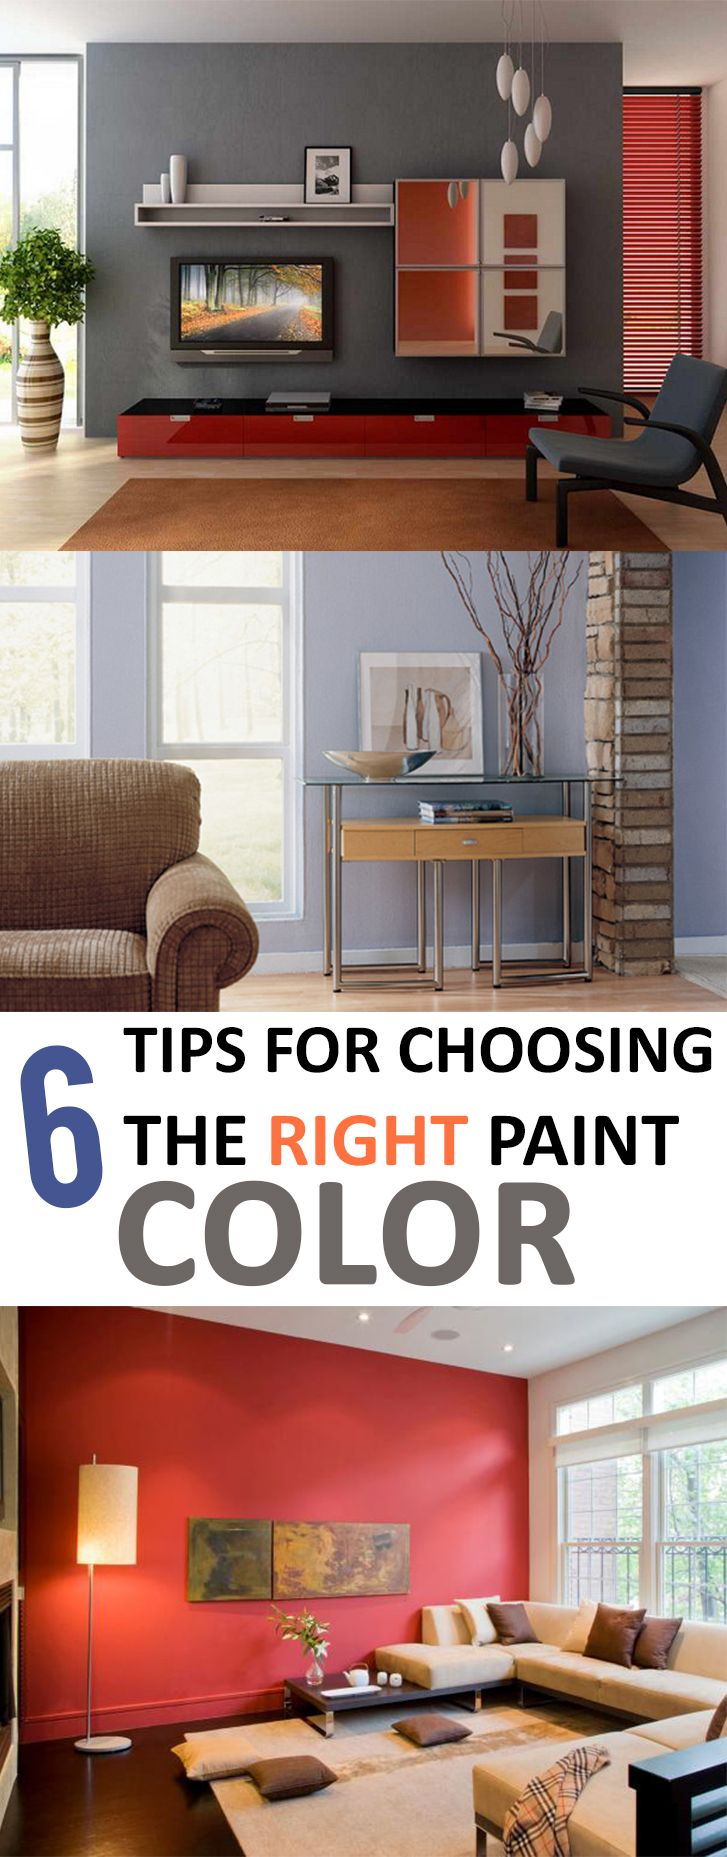 Choosing paint can seem like a daunting task, but not with these amazing tips!